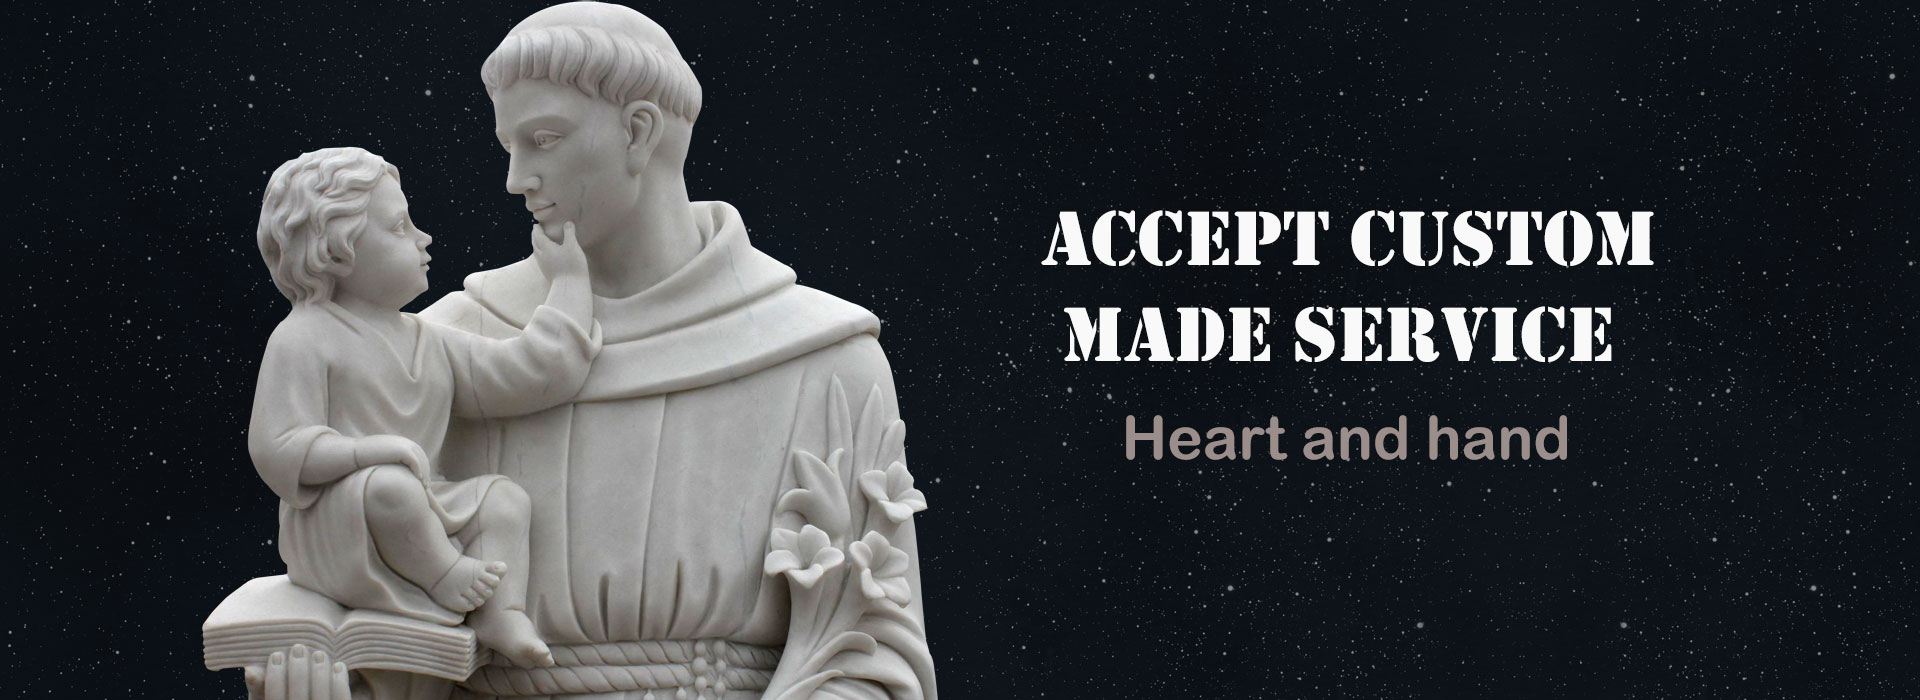 Relief character white marble statue saint Anthony statue designs for wholesales from Alibaba